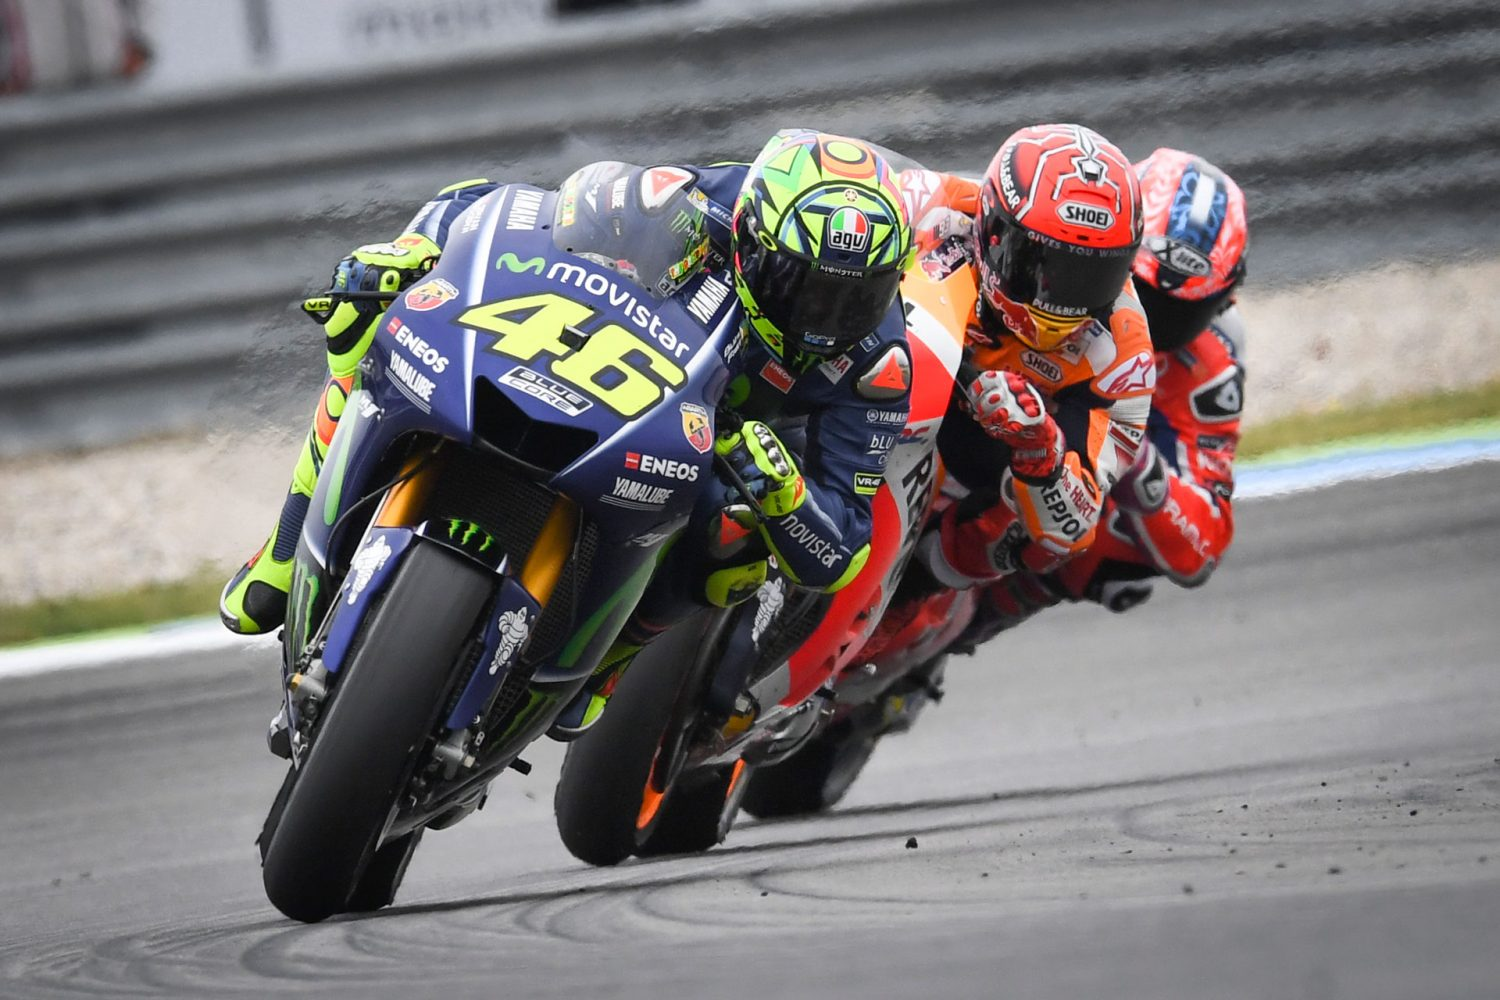 Valentino Rossi takes the win in Assen - Petrucci 2nd - Bike Review